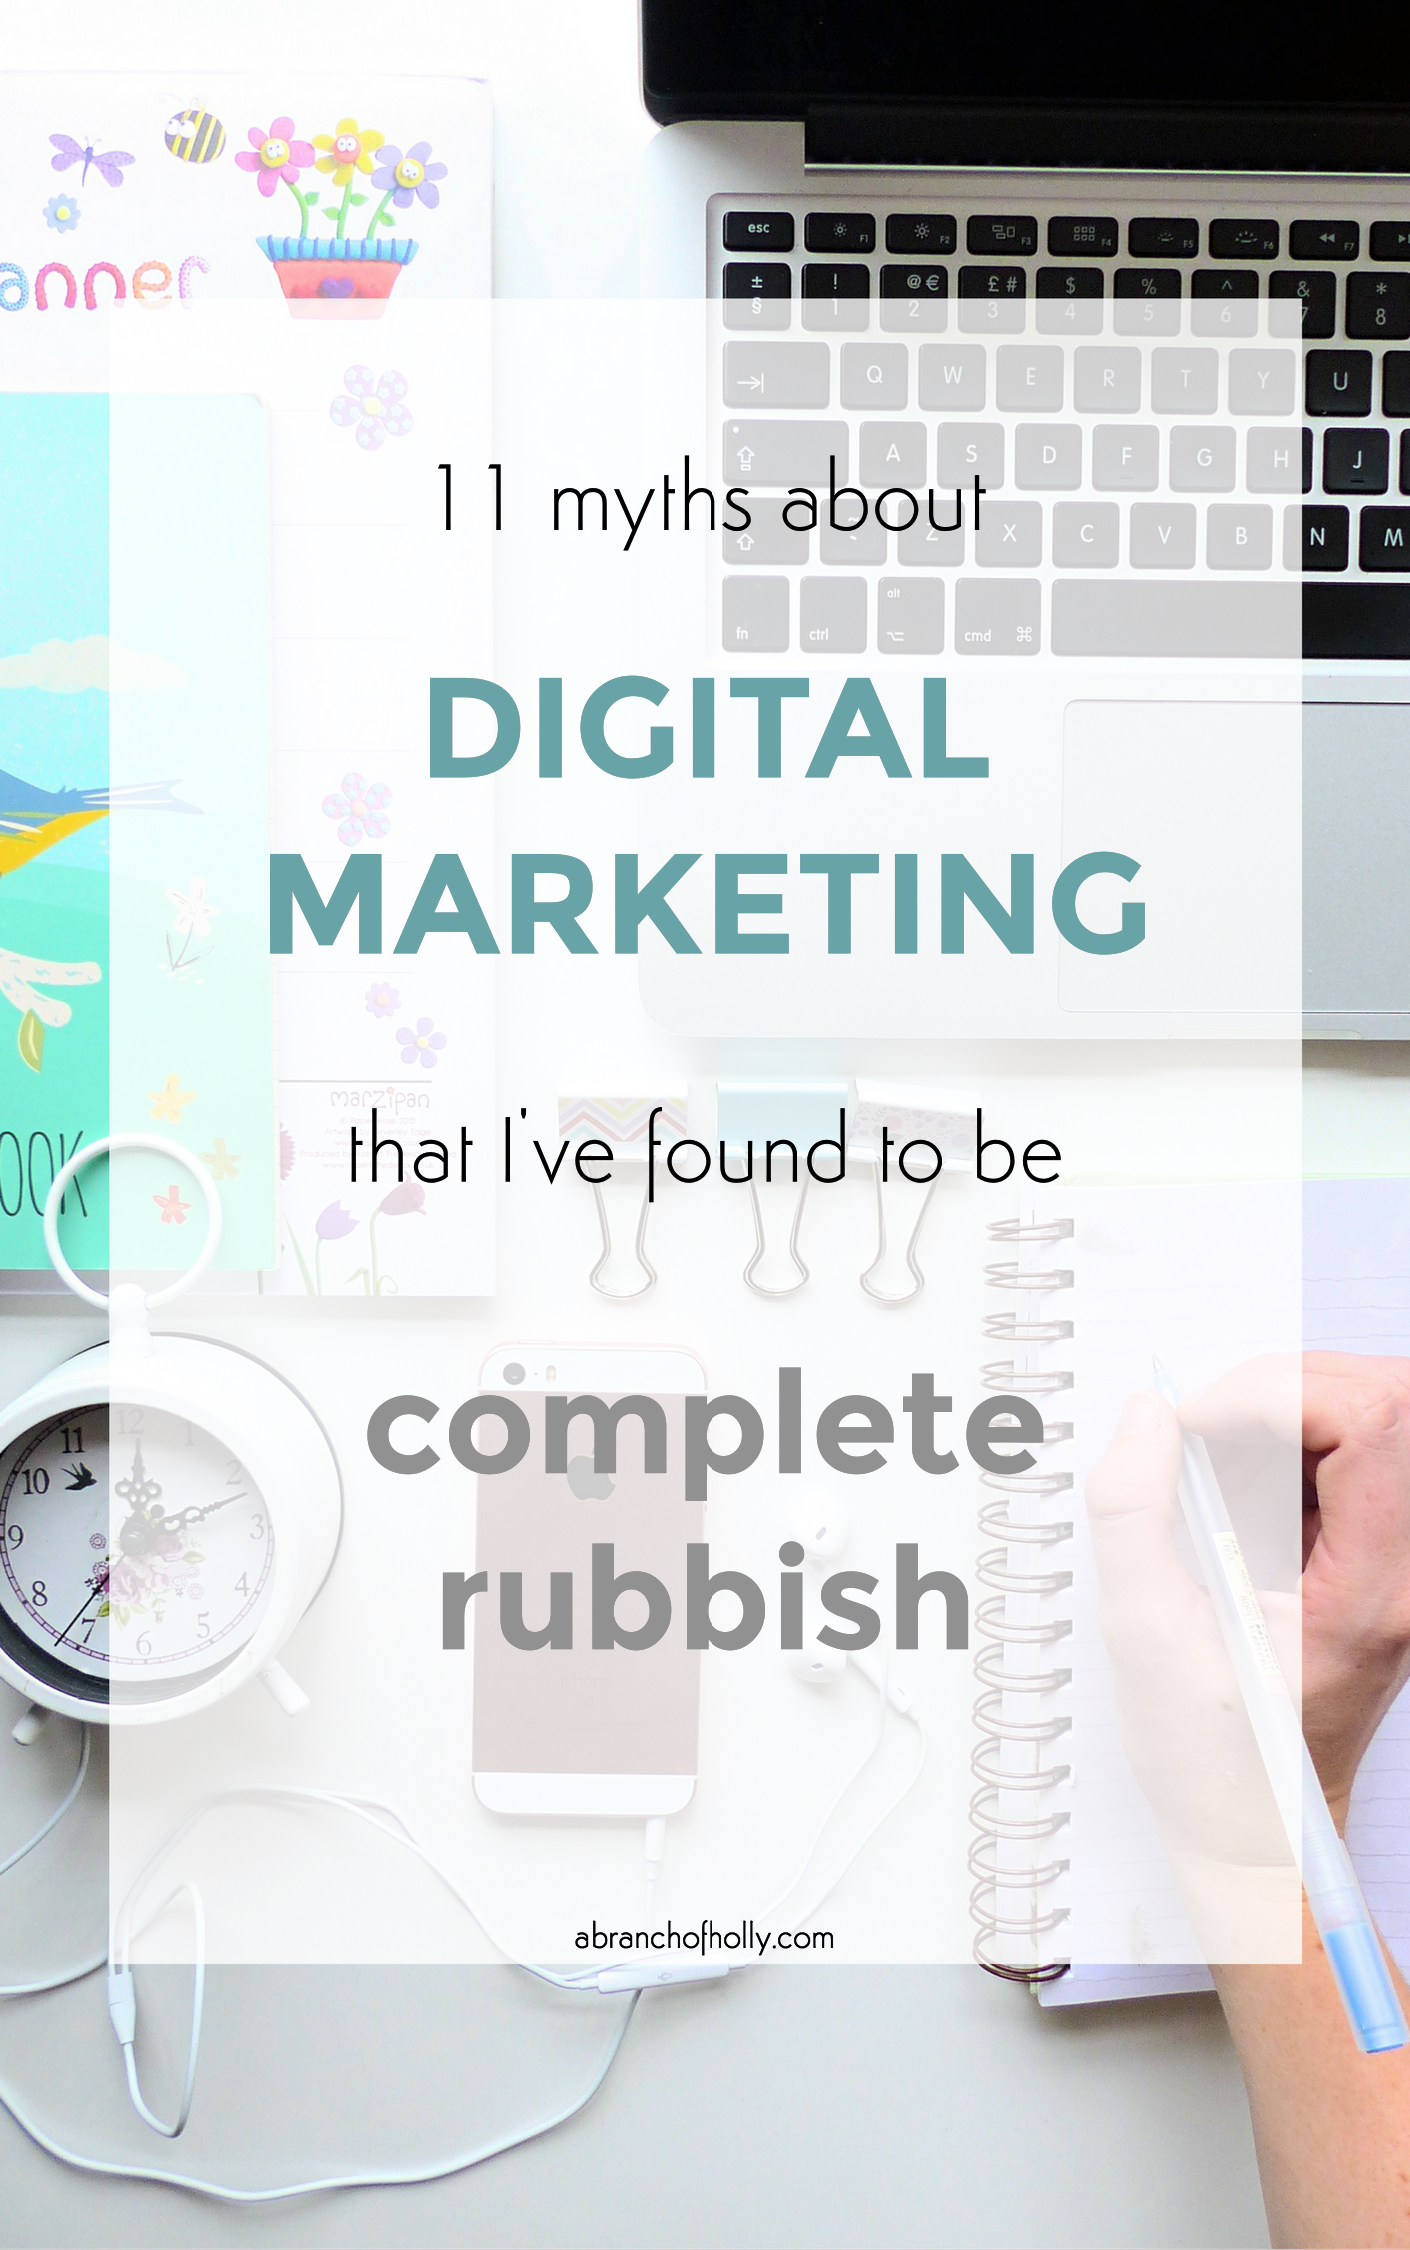 11 myths about digital marketing that i've found to be complete rubbish